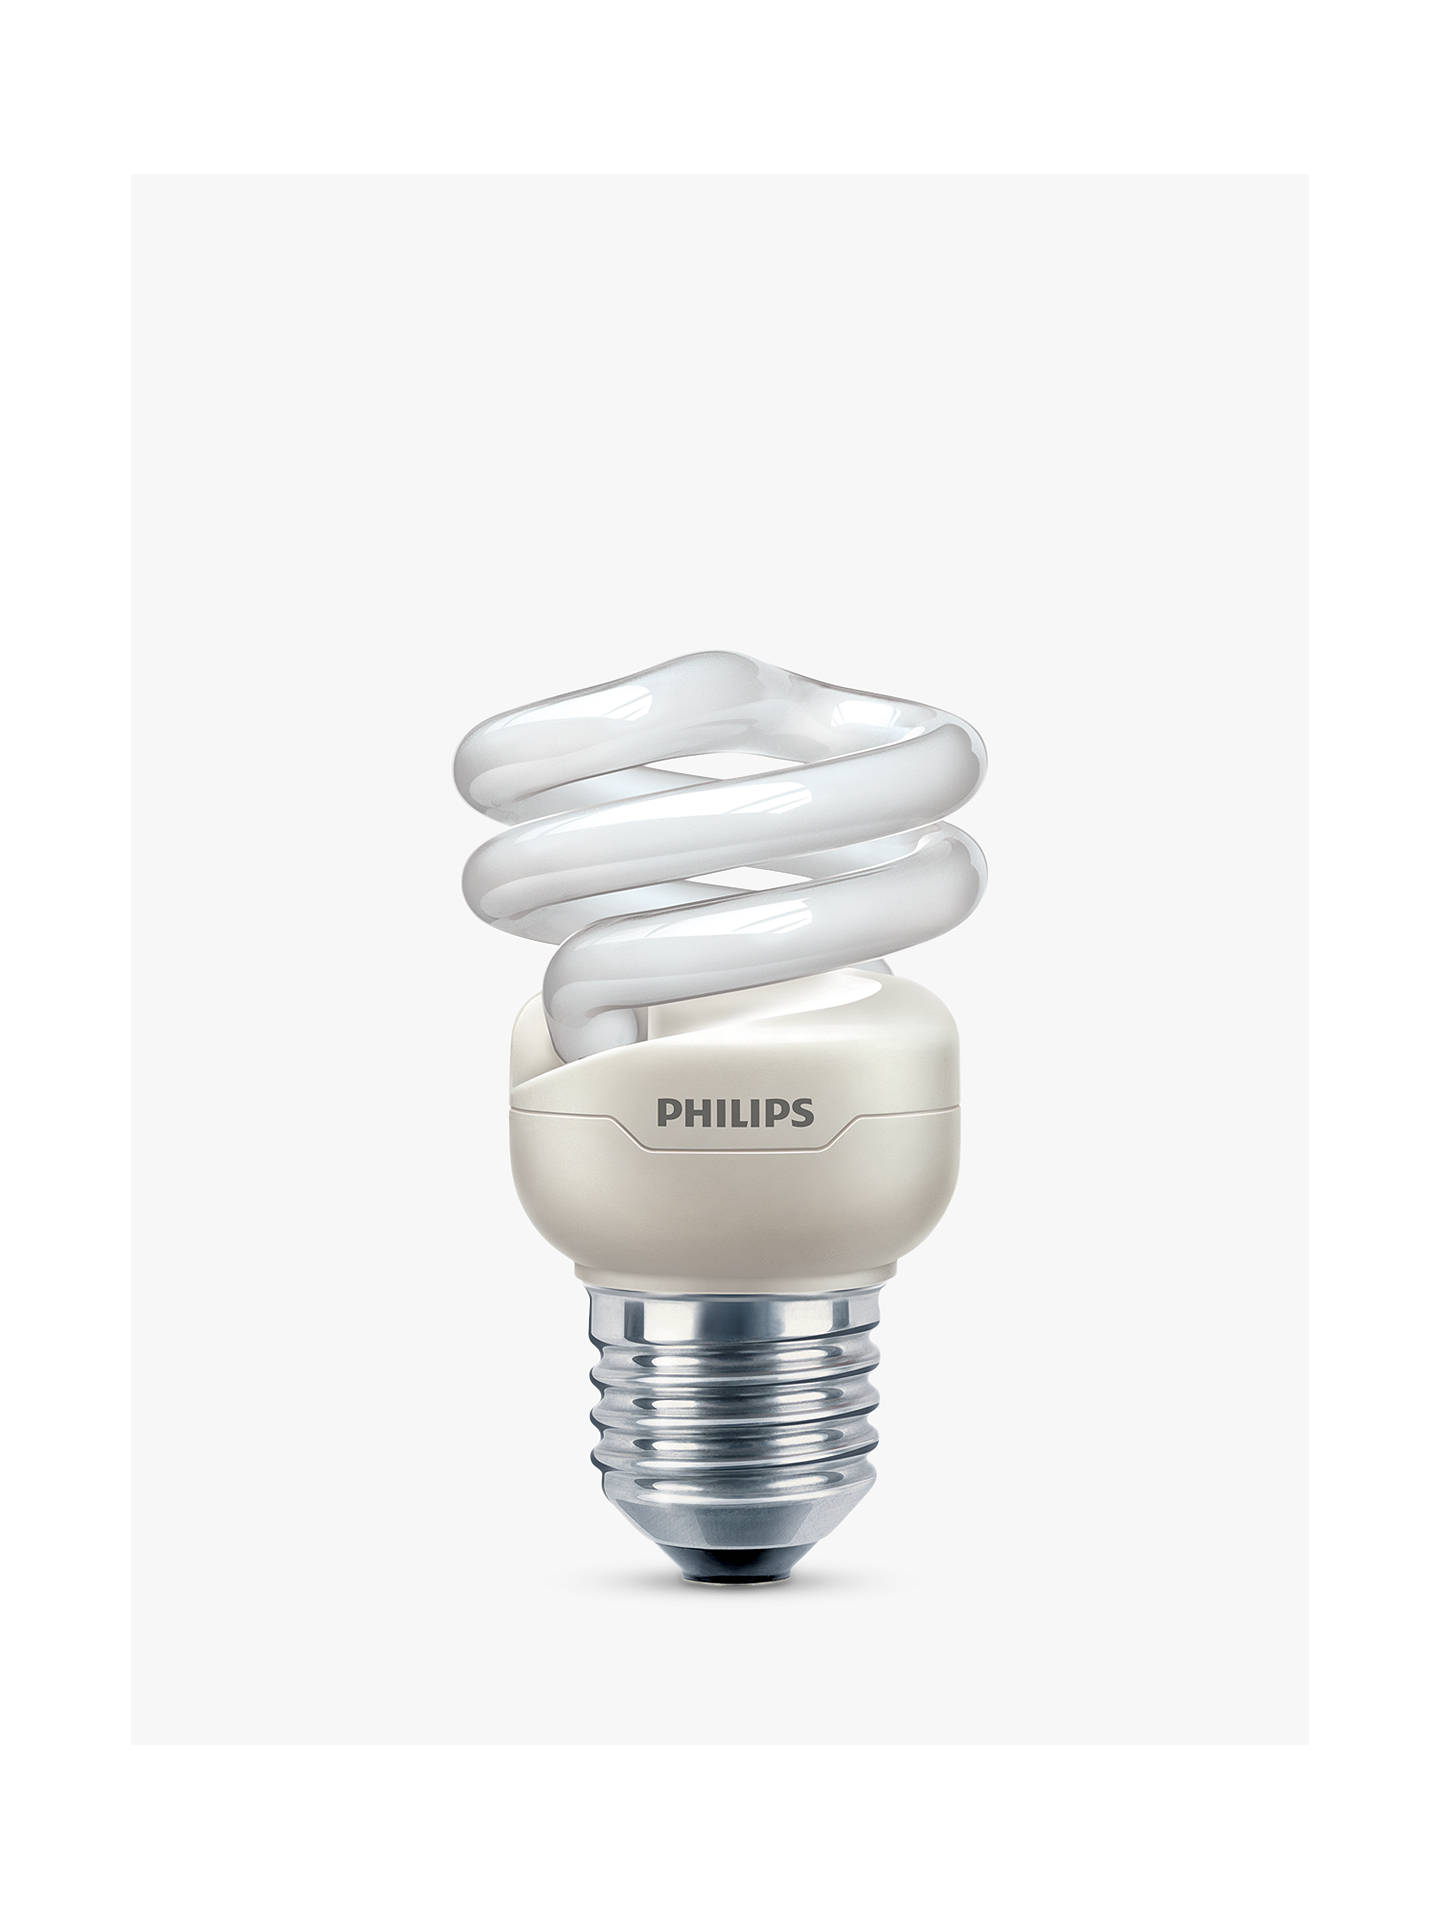 BuyPhilips 8W ES Energy Saver Spiral Bulb, Opal Online at johnlewis.com